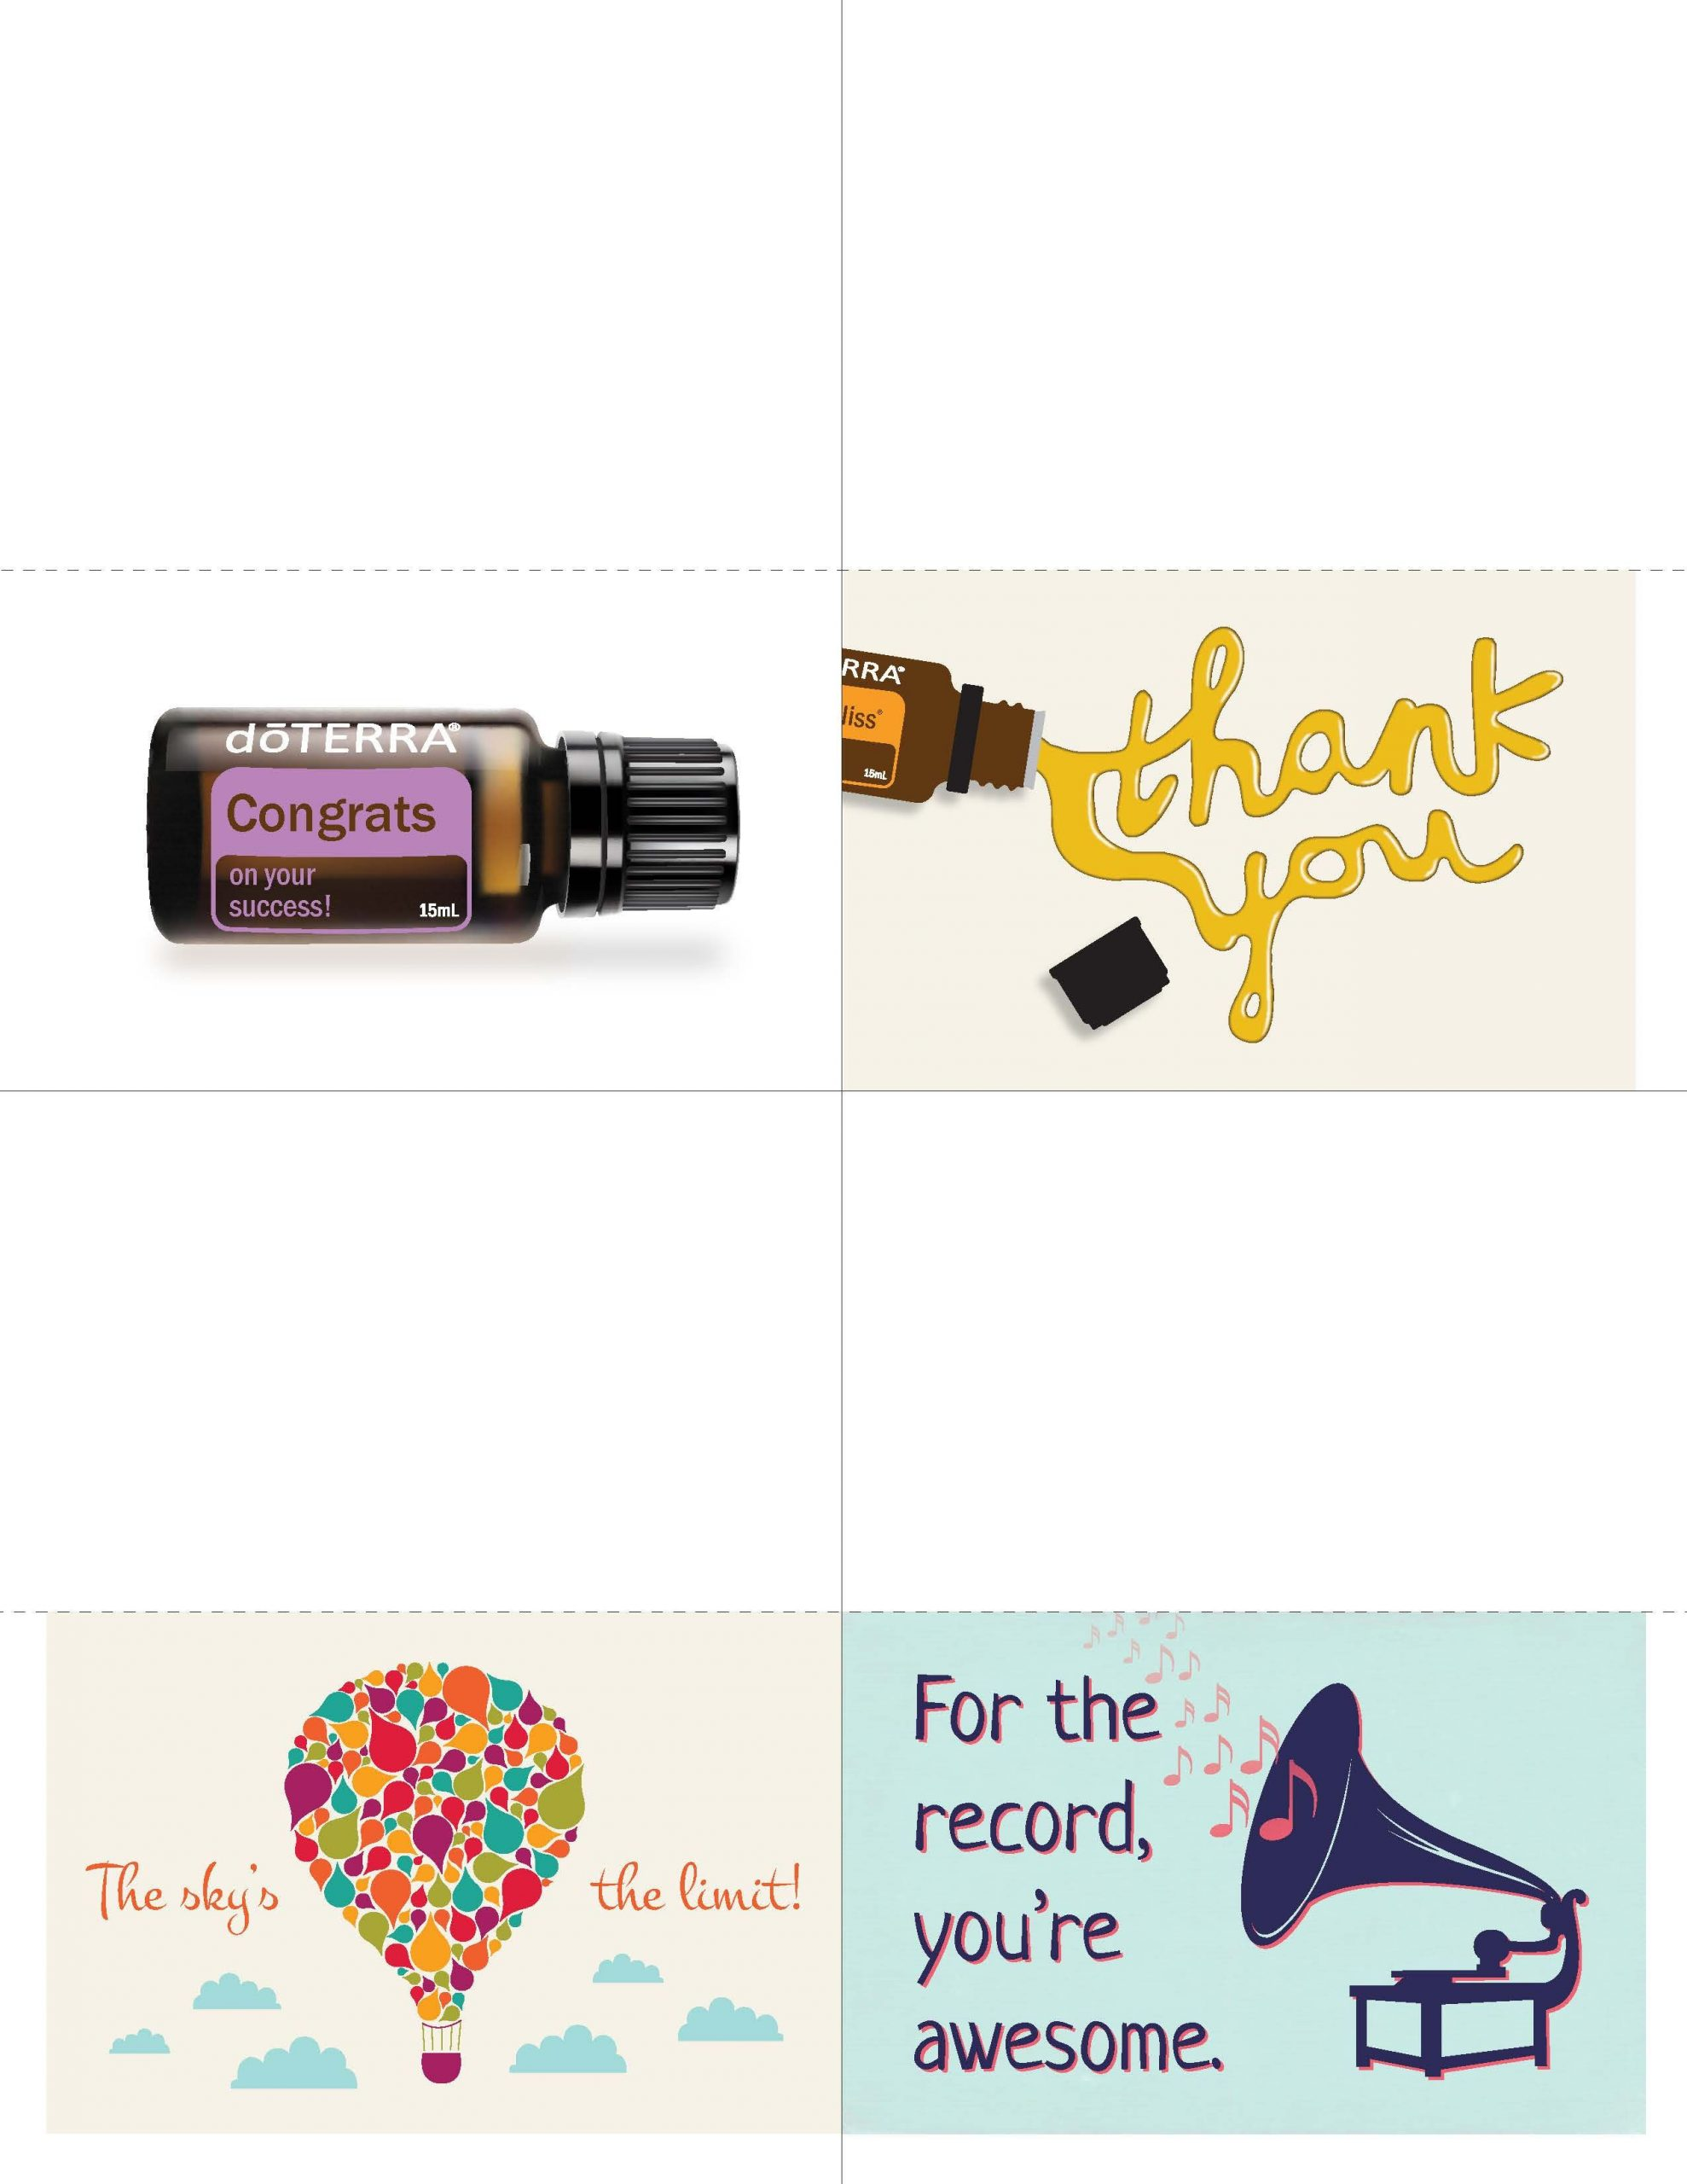 Downline Appreciation Day Thank You Cards